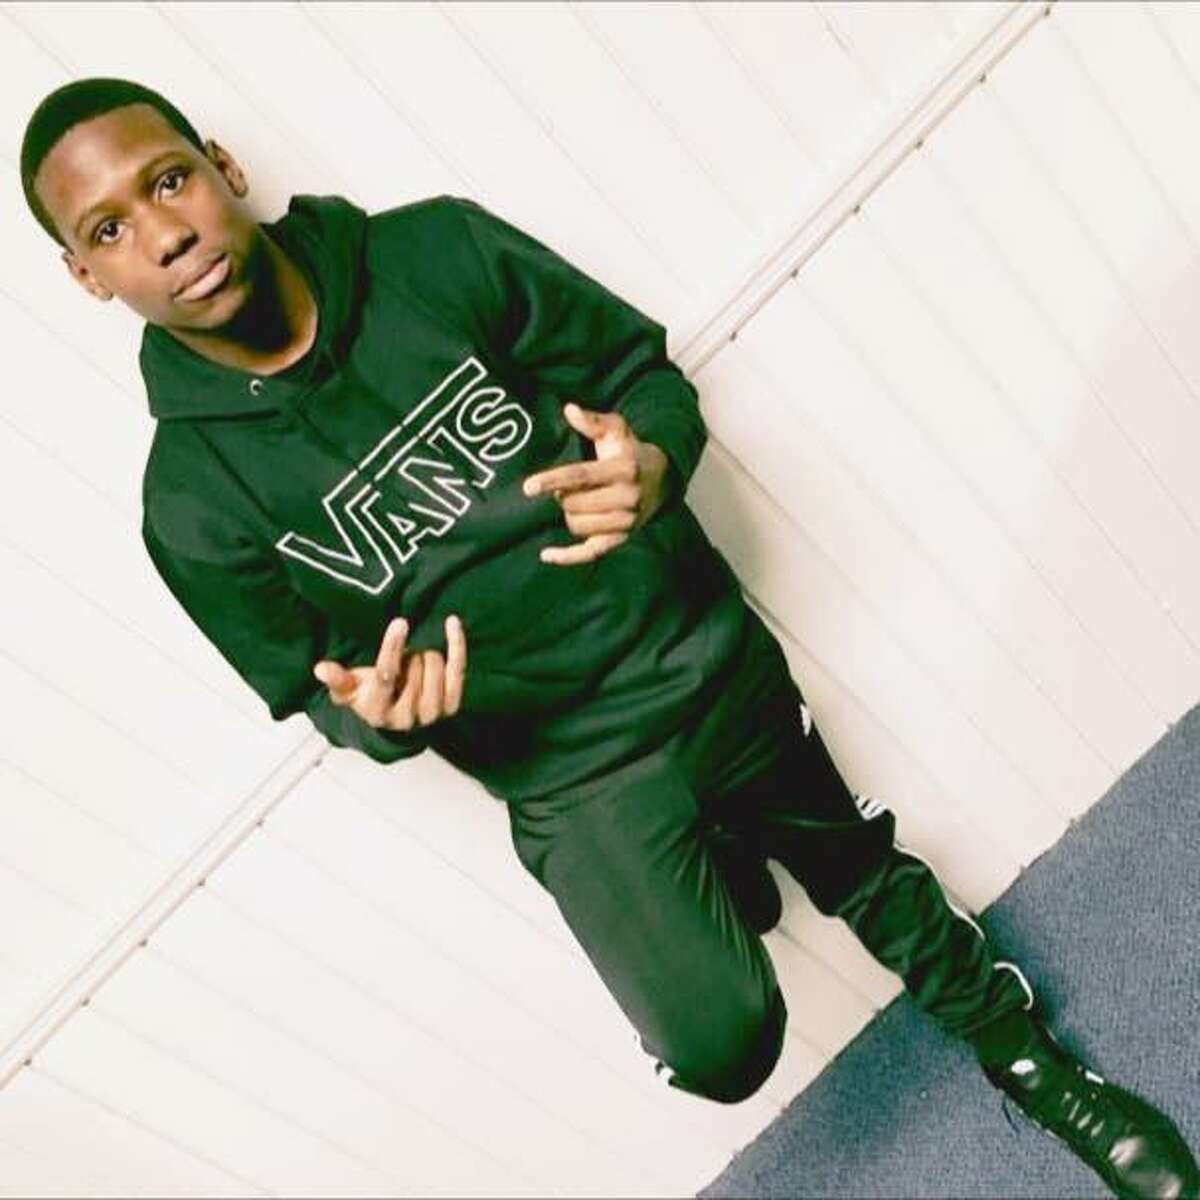 Marcus Hall was shot on Thursday, Sept. 20 at Southwood Square Apartments in Stamford's West Side neighborhood. He died on Saturday, Sept. 22, after his family decided to take him off life support. Hall was a Westhill High School student.